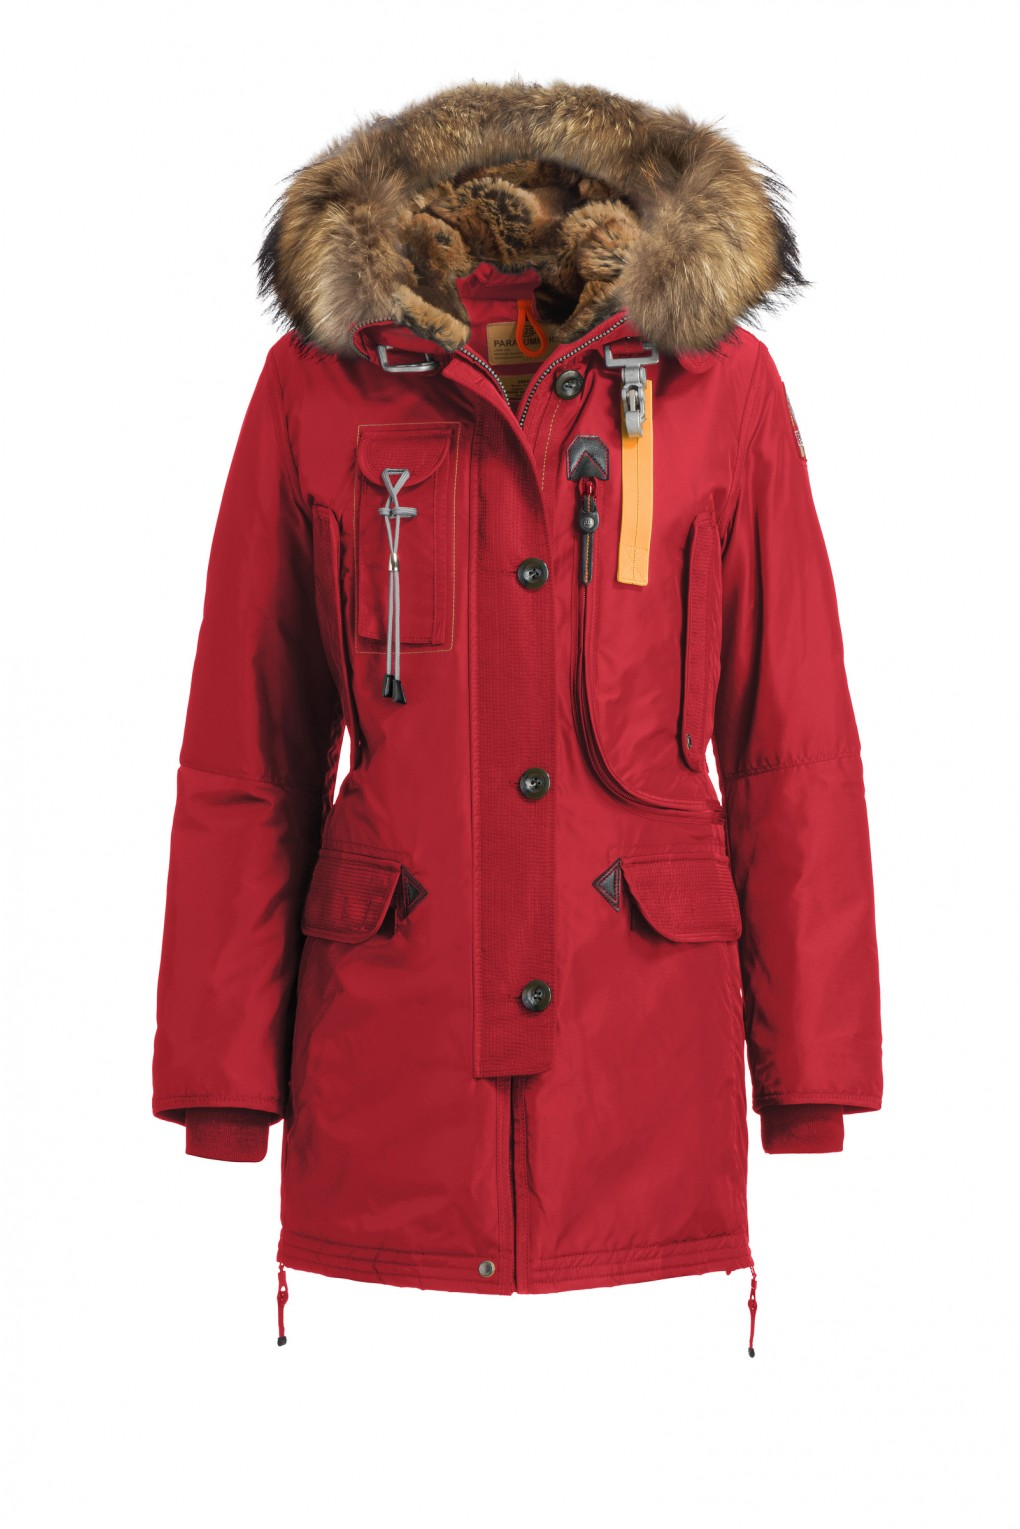 Winterjas Kort Dames.Parajumpers Masterpiece Kodiak Dames Jas Red Parajumpers